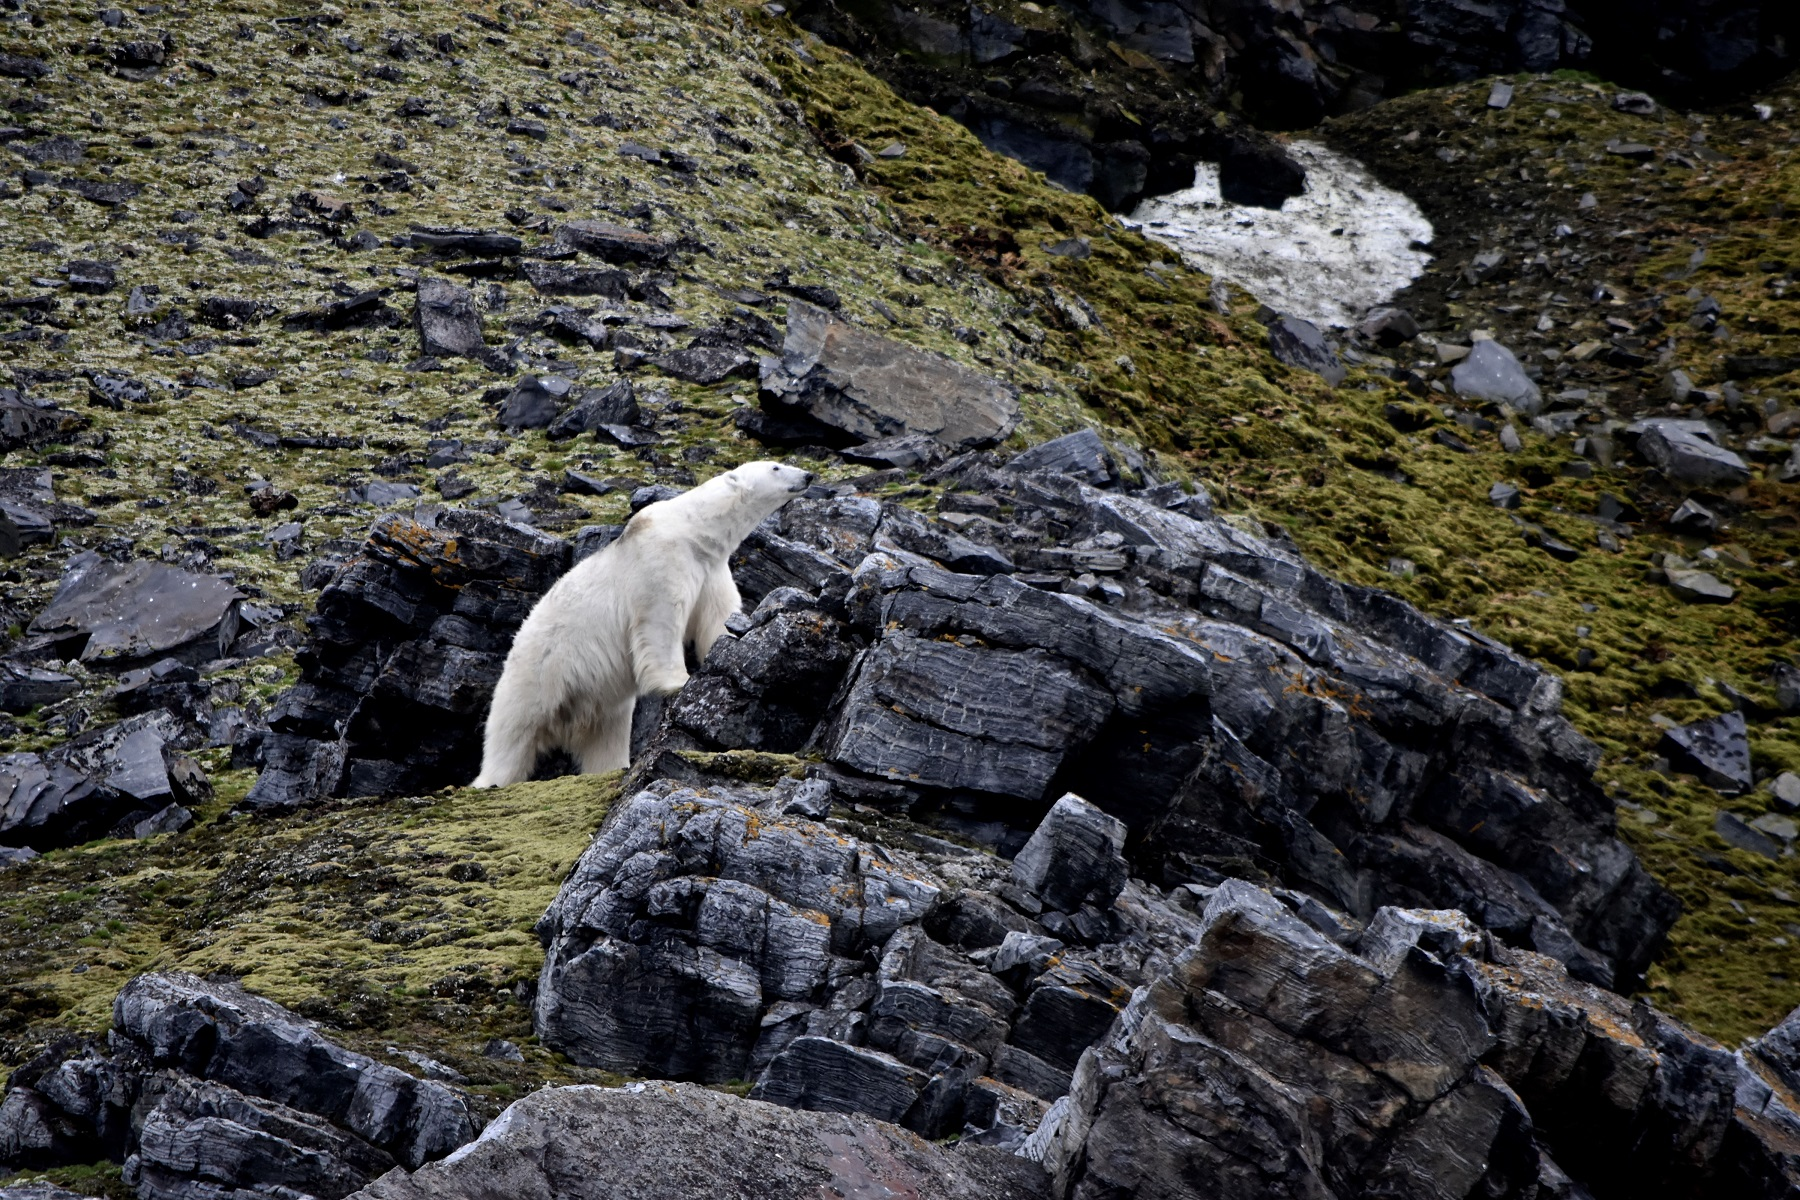 The realm of the polar bear: Here's what it's like to explore the remote wilds of Svalbard by boat